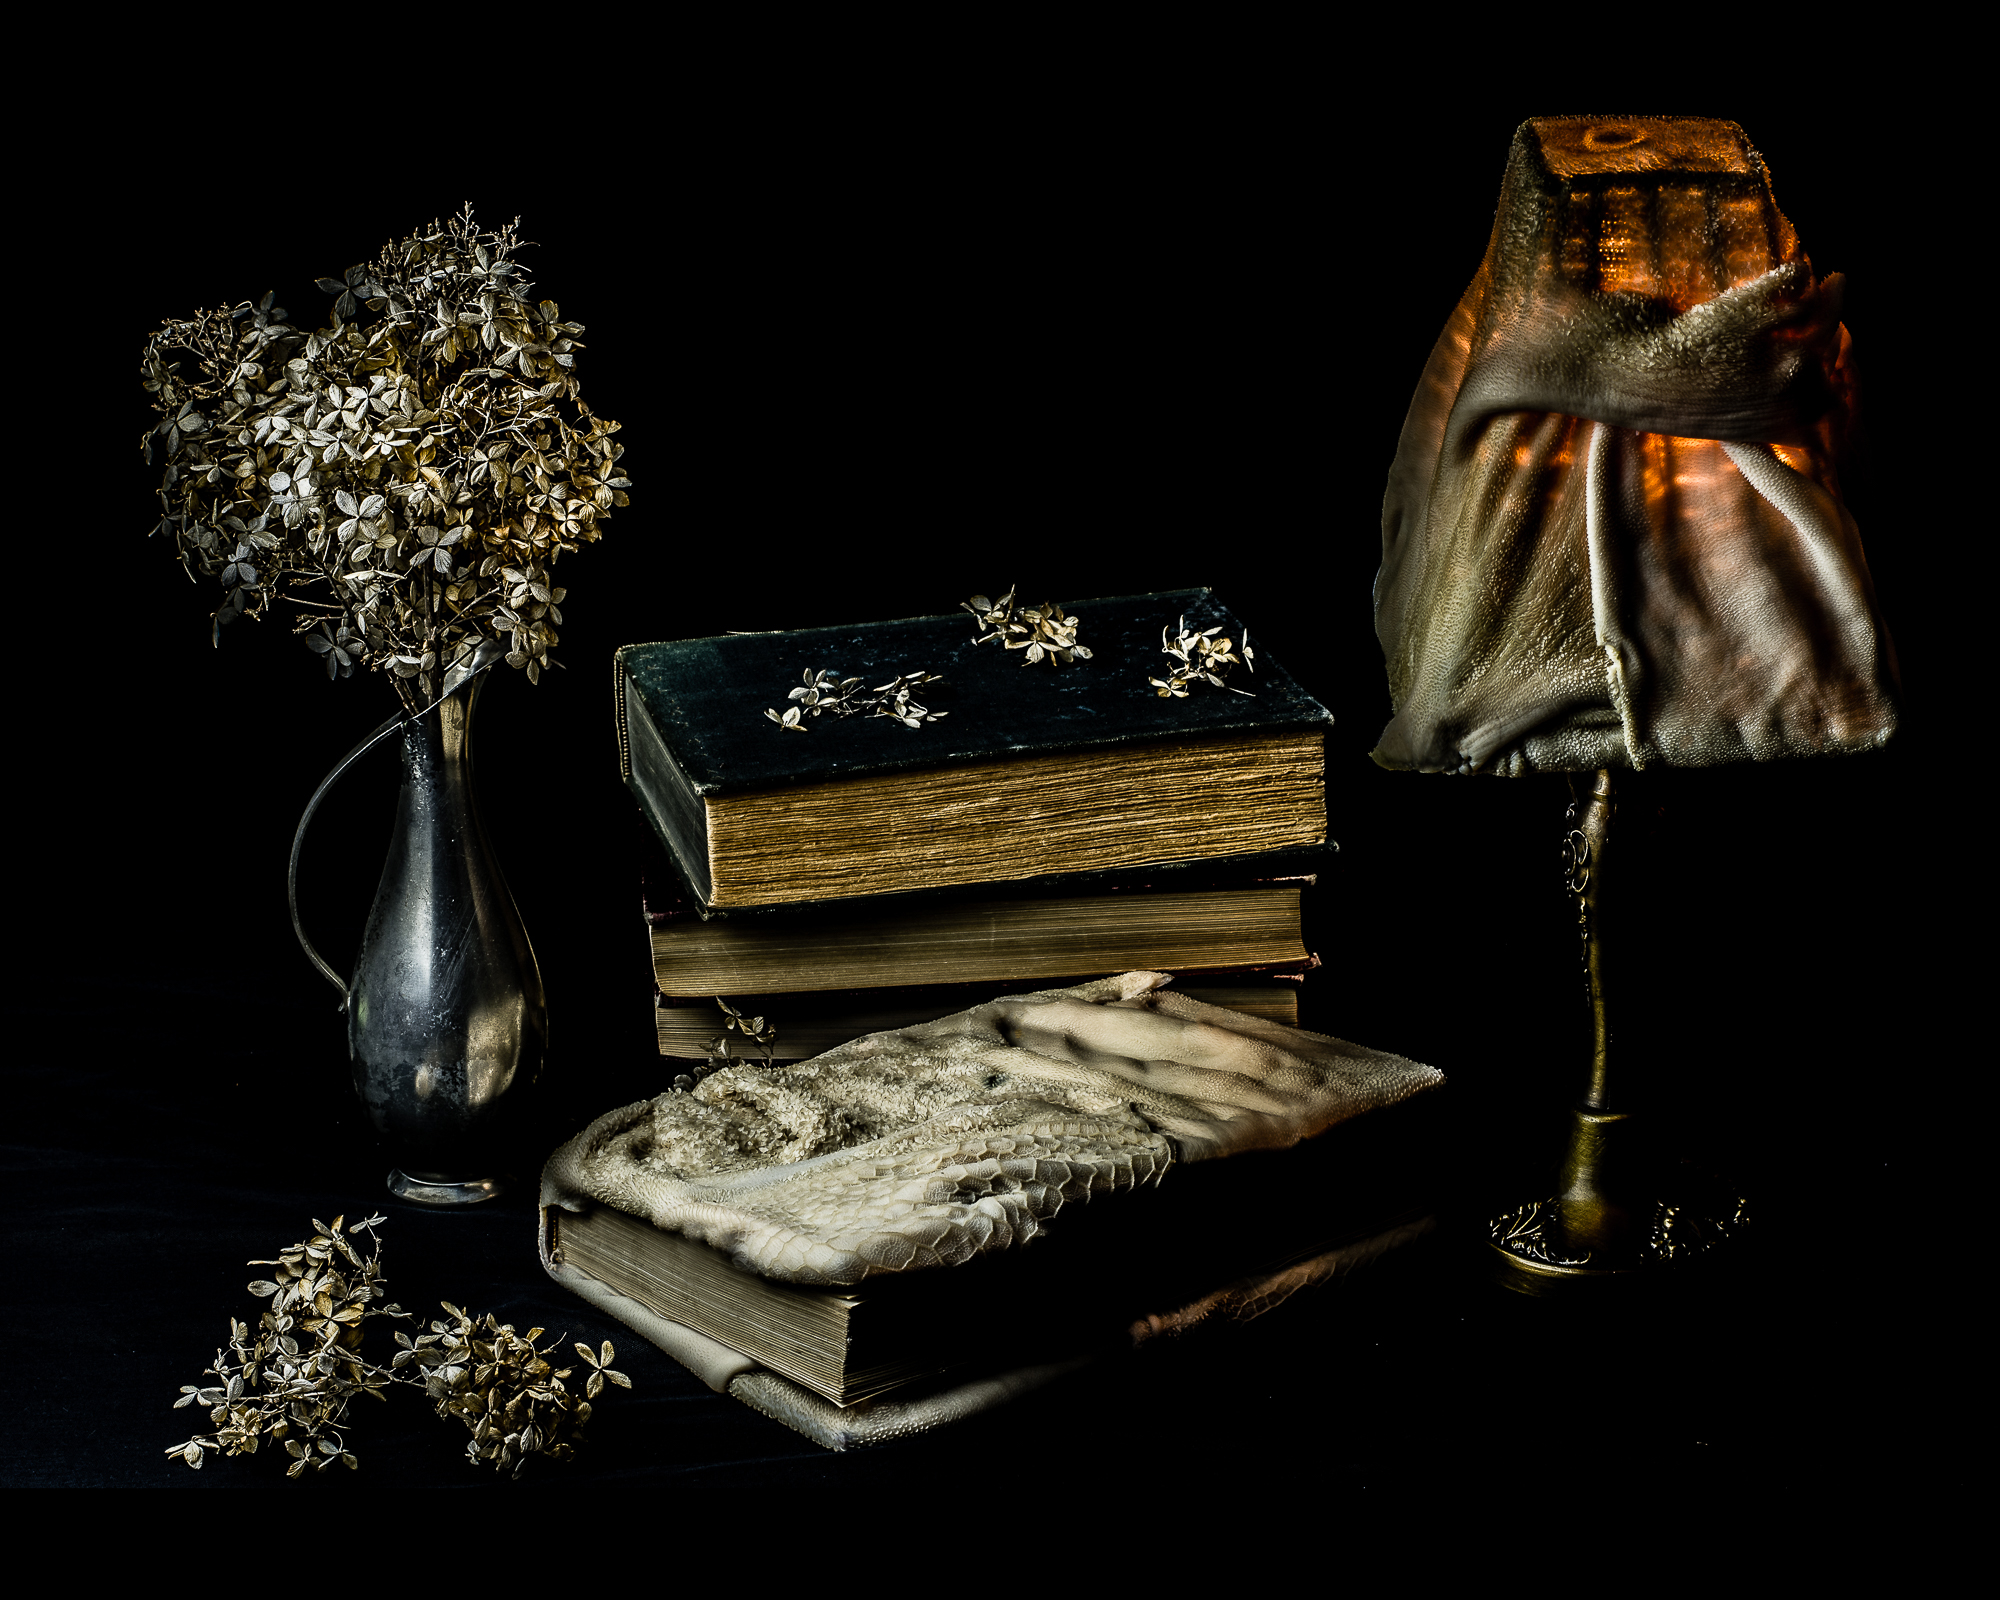 Book bound in sheep stomach with dead flowers and sheep stomach lampshade.